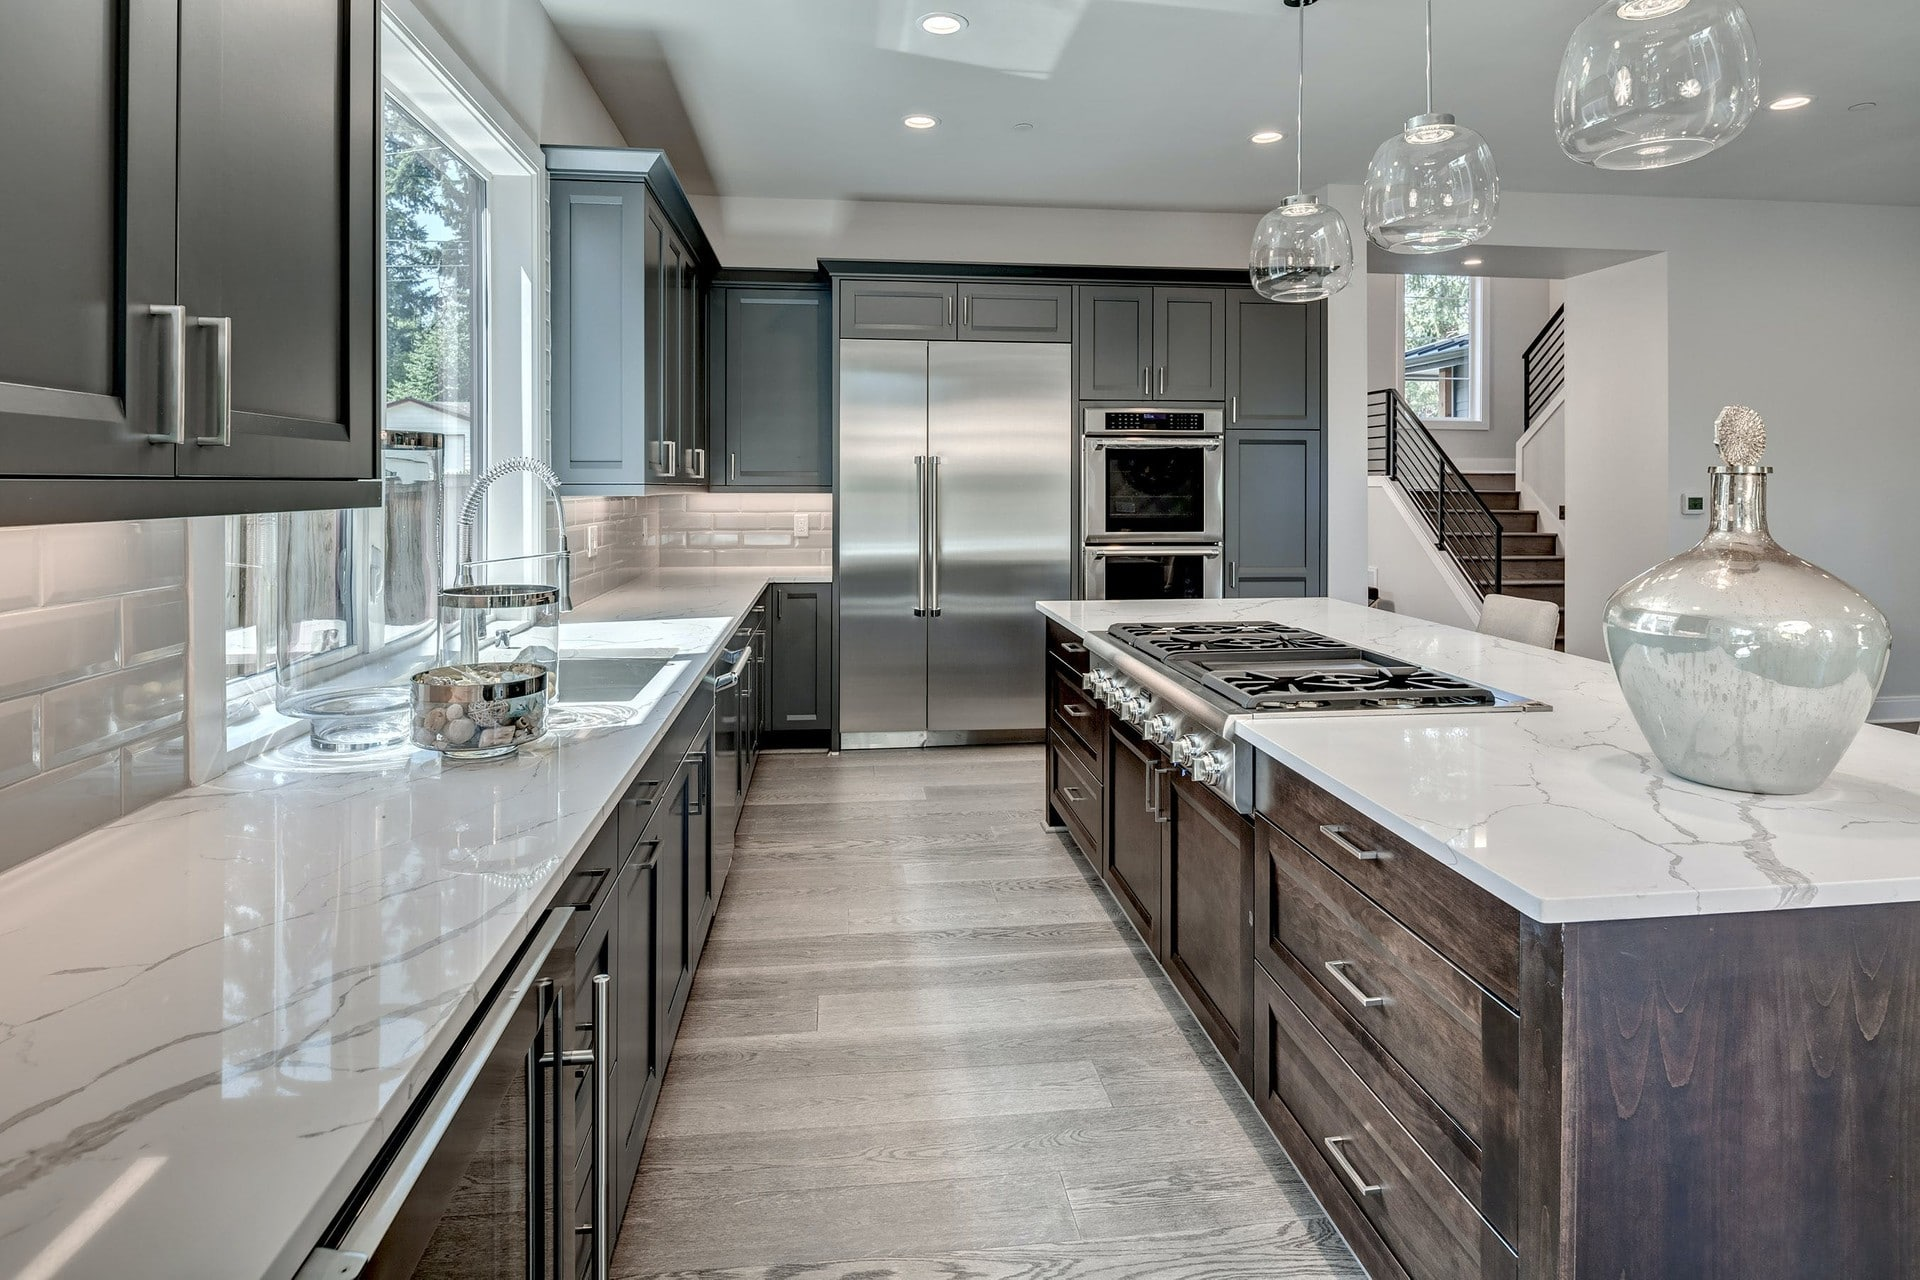 Before And After Kitchen Remodel Projects What You Can Learn